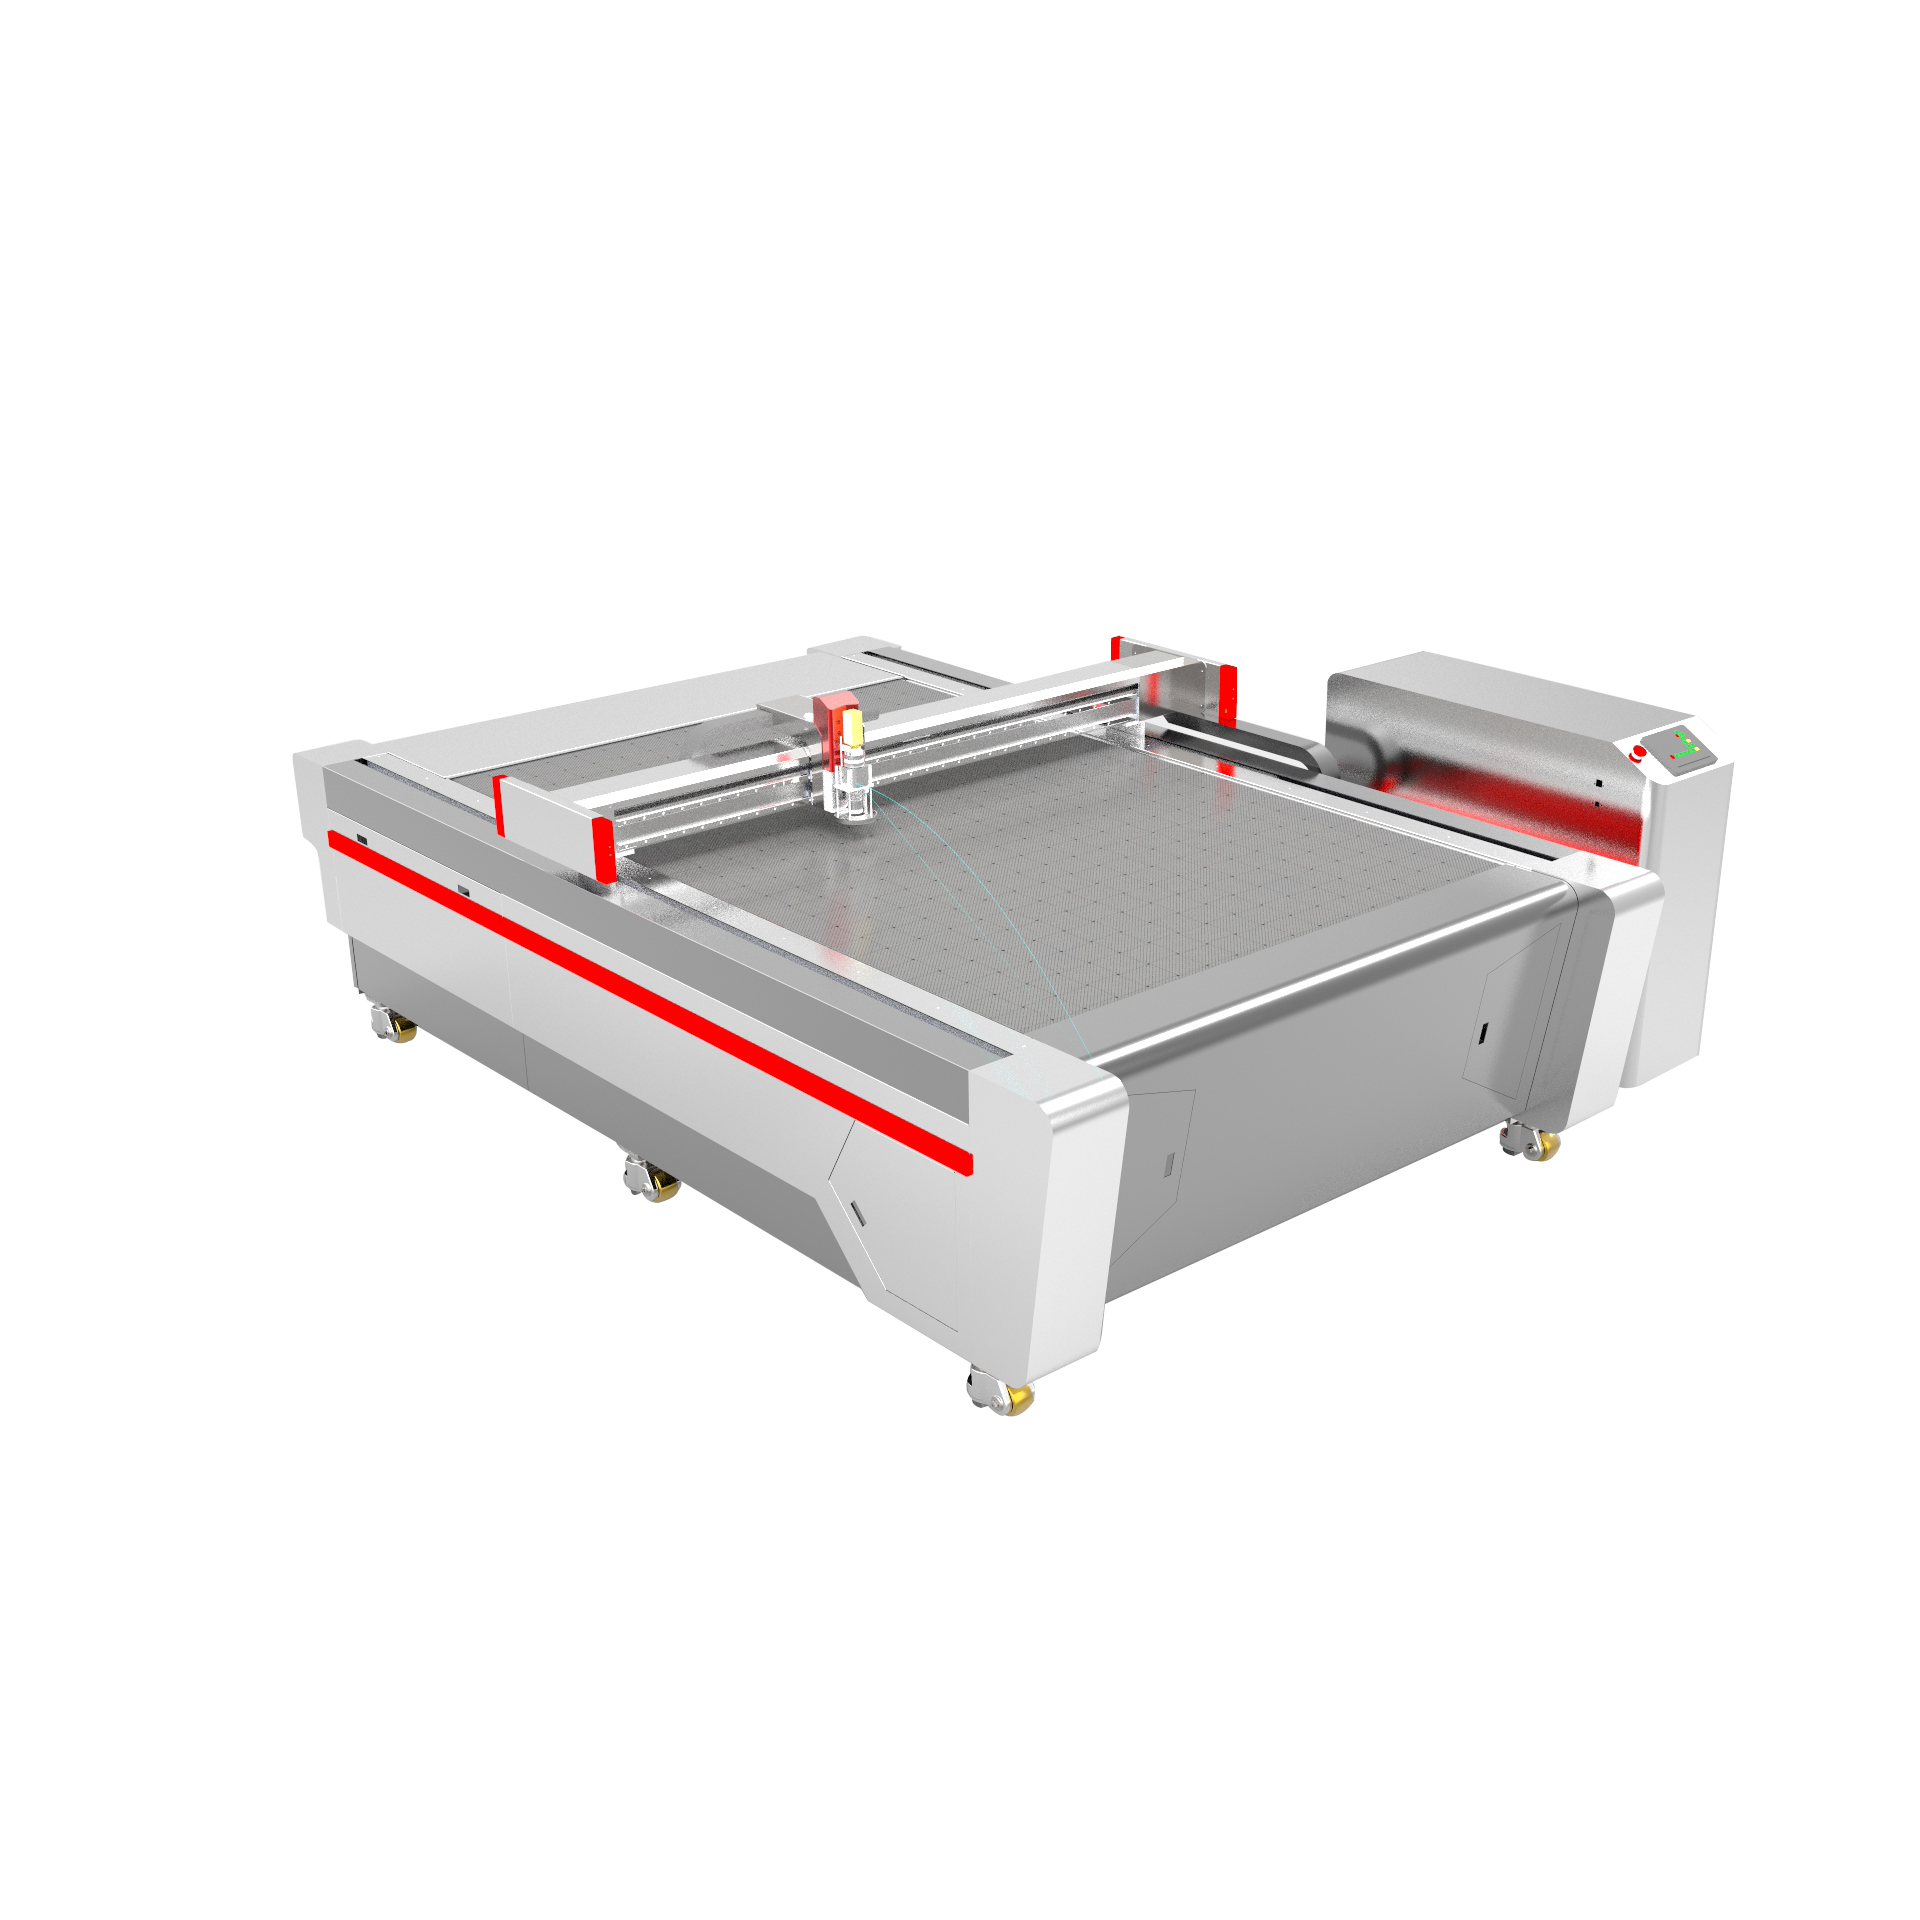 China Hot sale AOL industrial CNC cloth/textile fabric cutter/fiberglass cutting machine